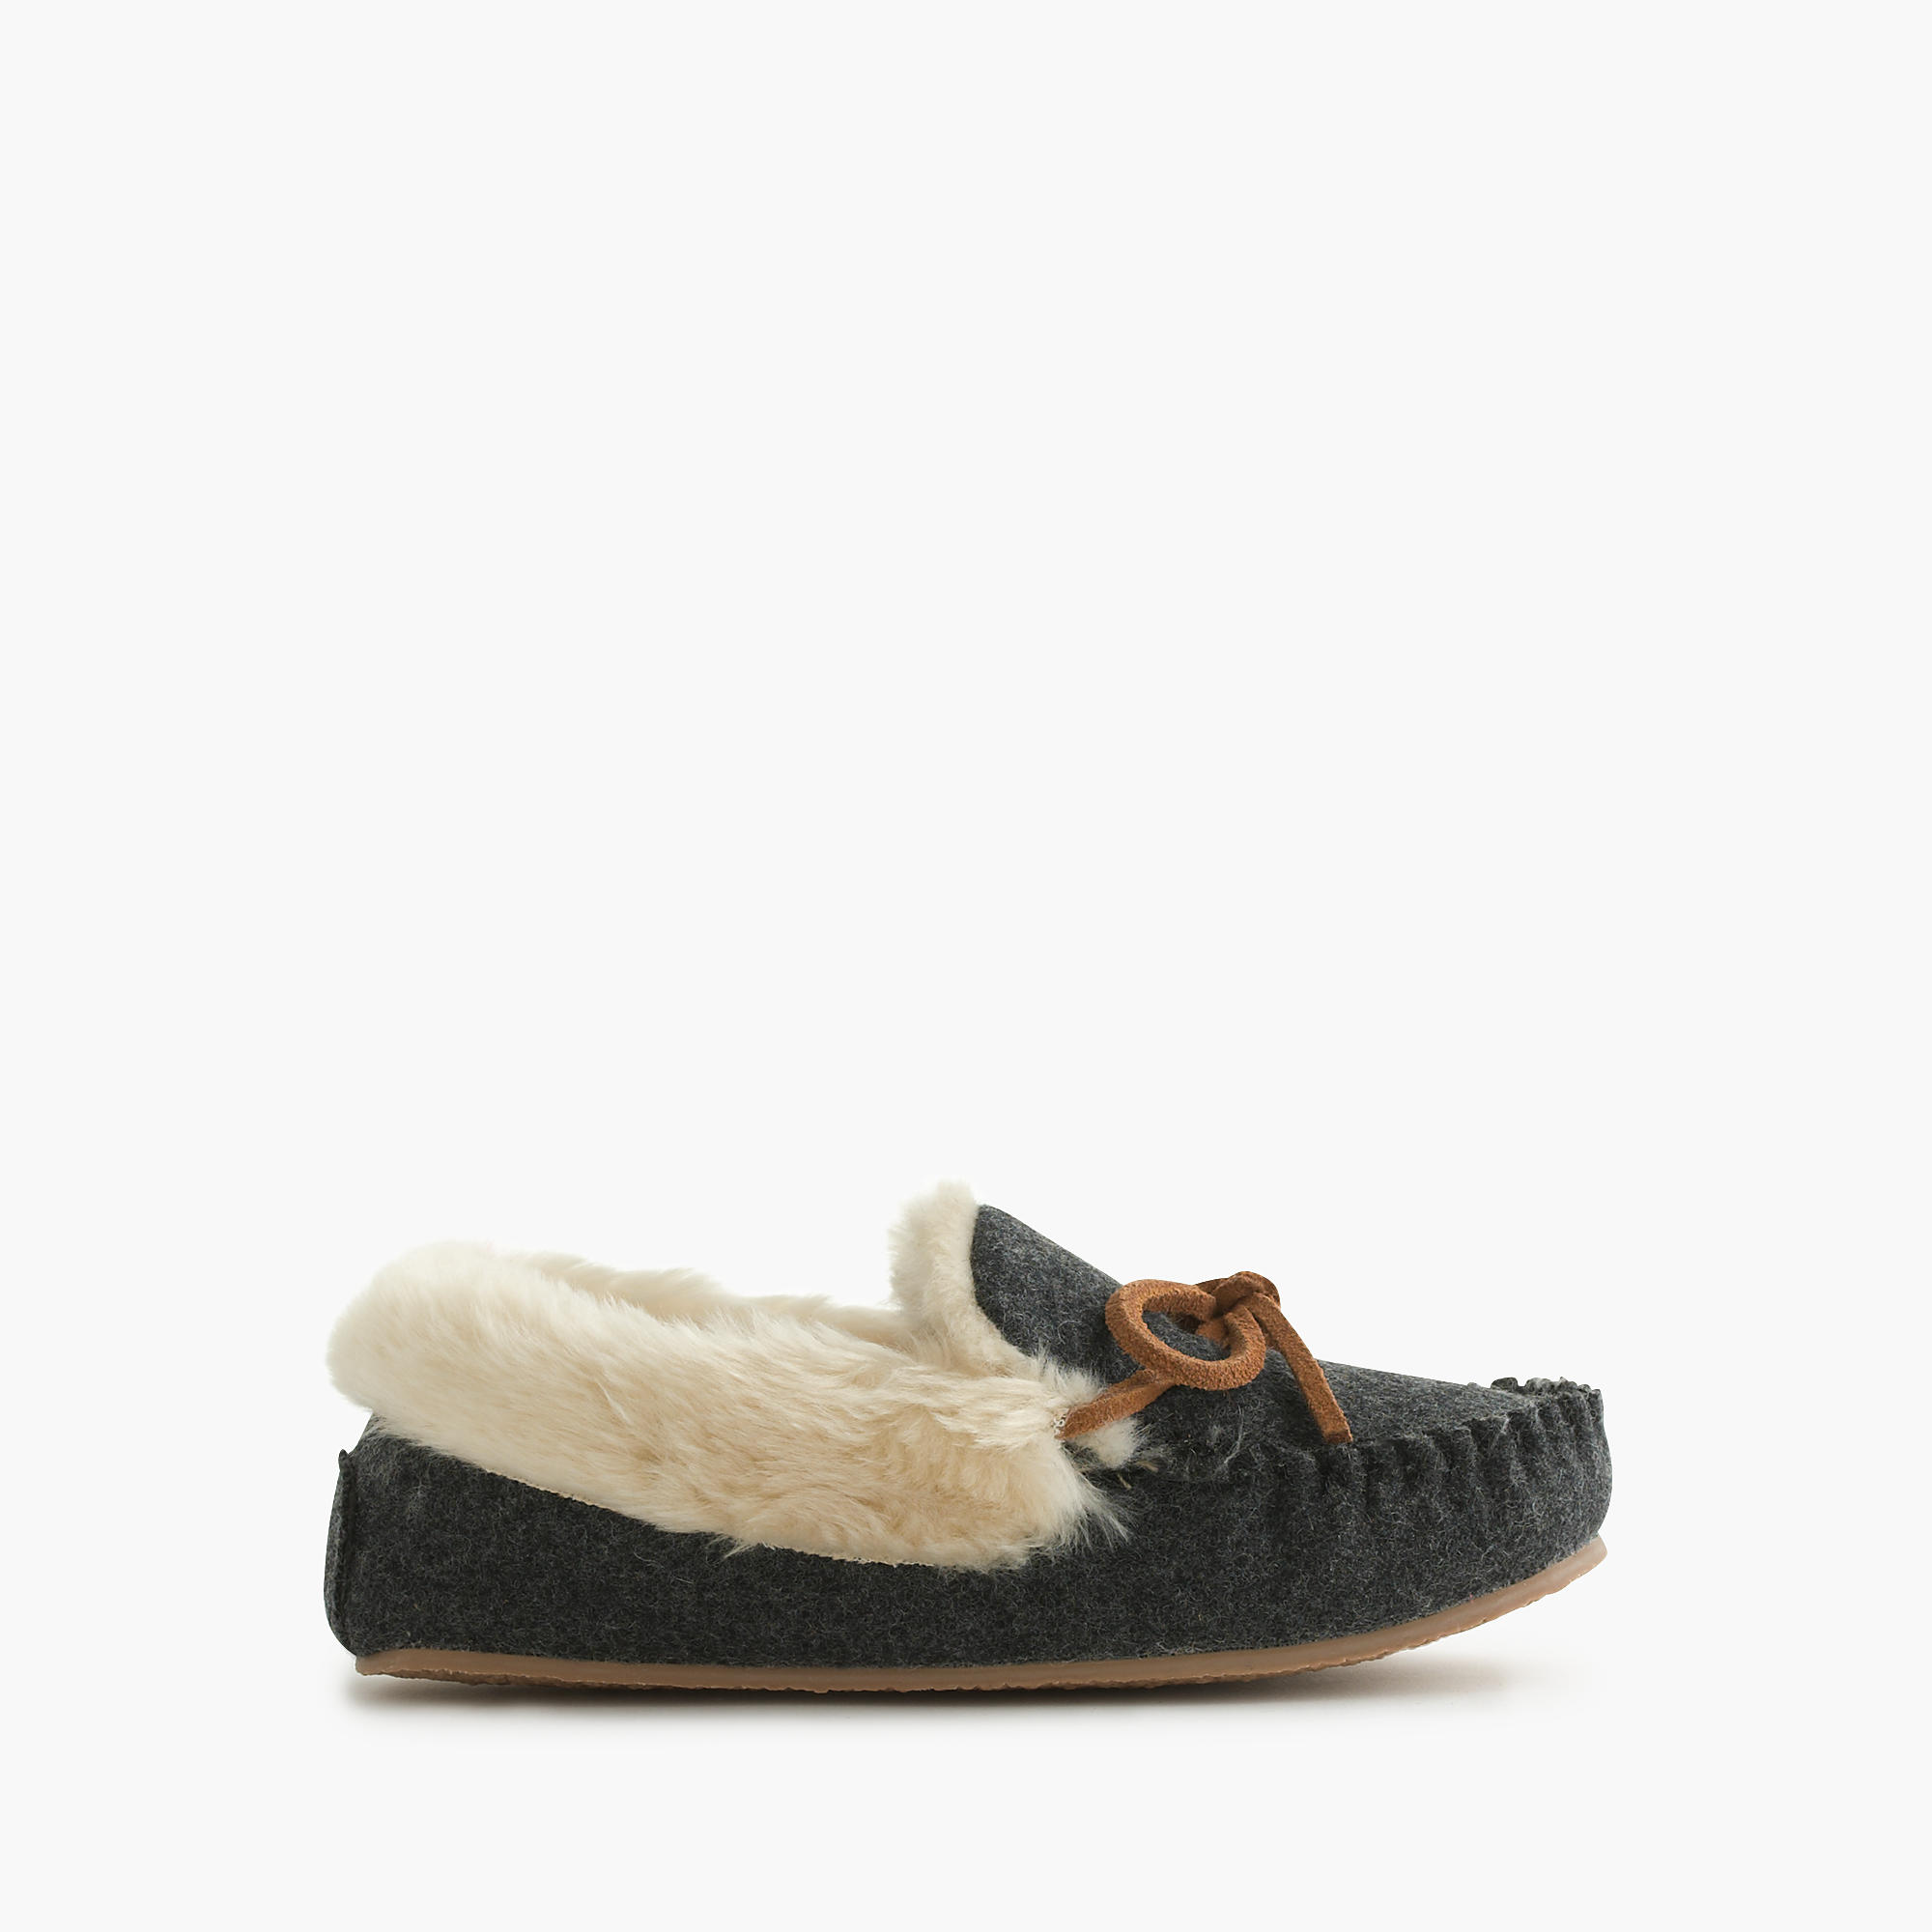 Kids 39 shearling lodge moccasins j crew for J crew bedroom slippers